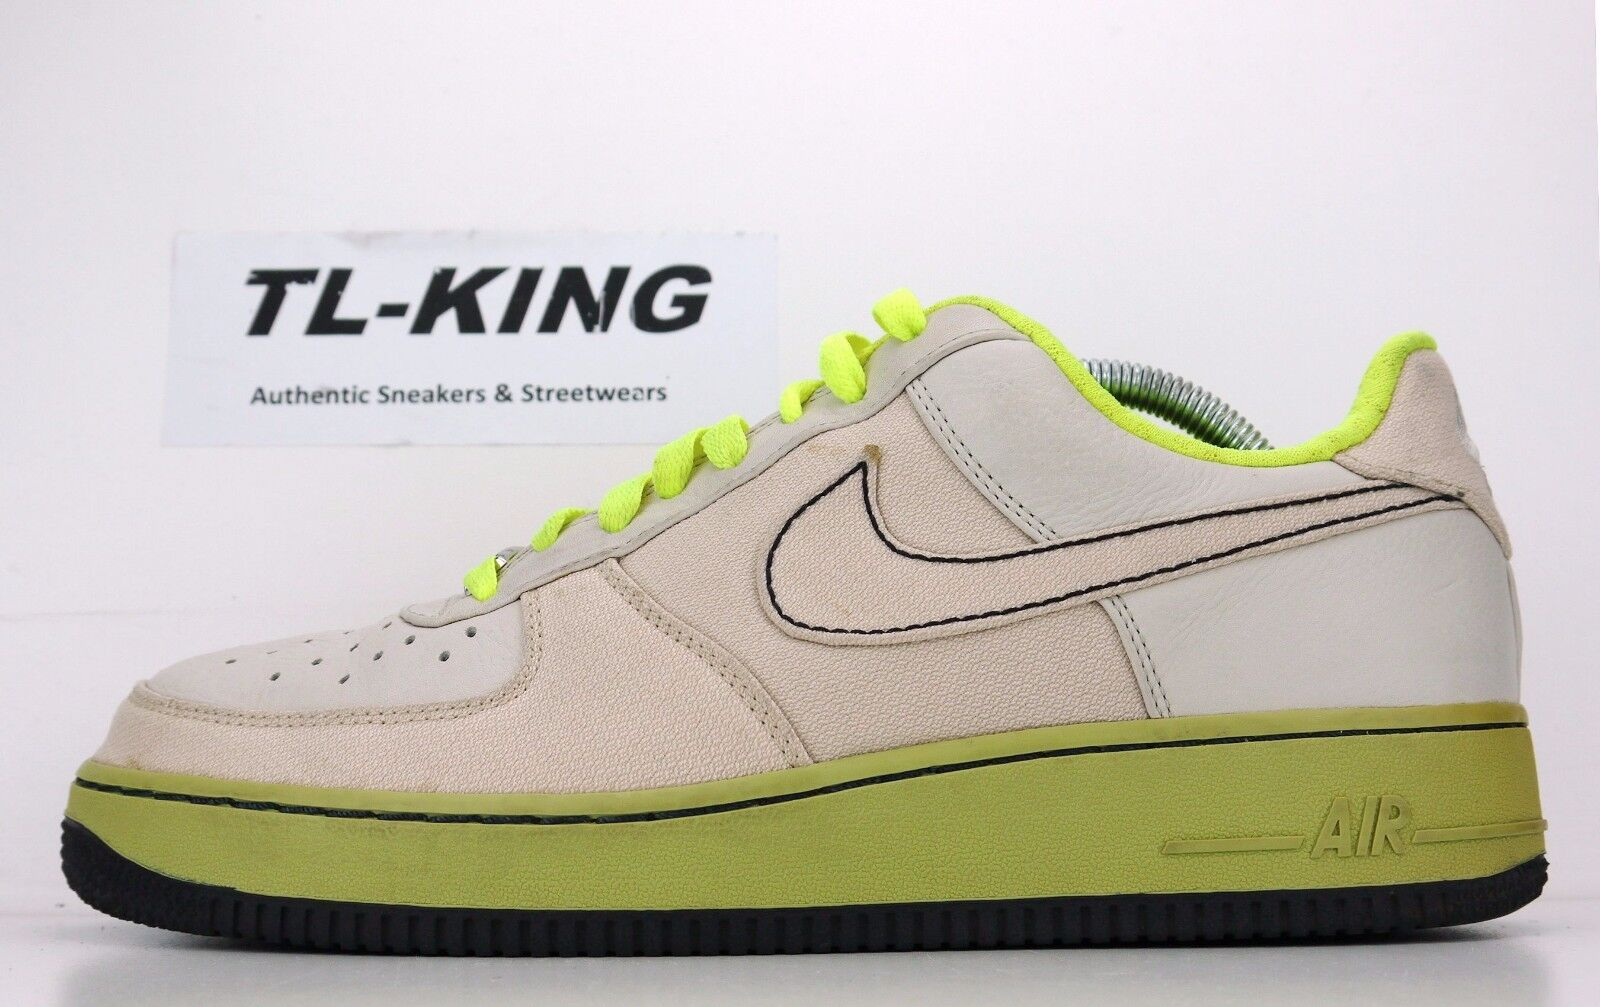 2007 Nike Air Force 1 Premium Toronto Bone Volt Green 315180 002 Price reduction New shoes for men and women, limited time discount